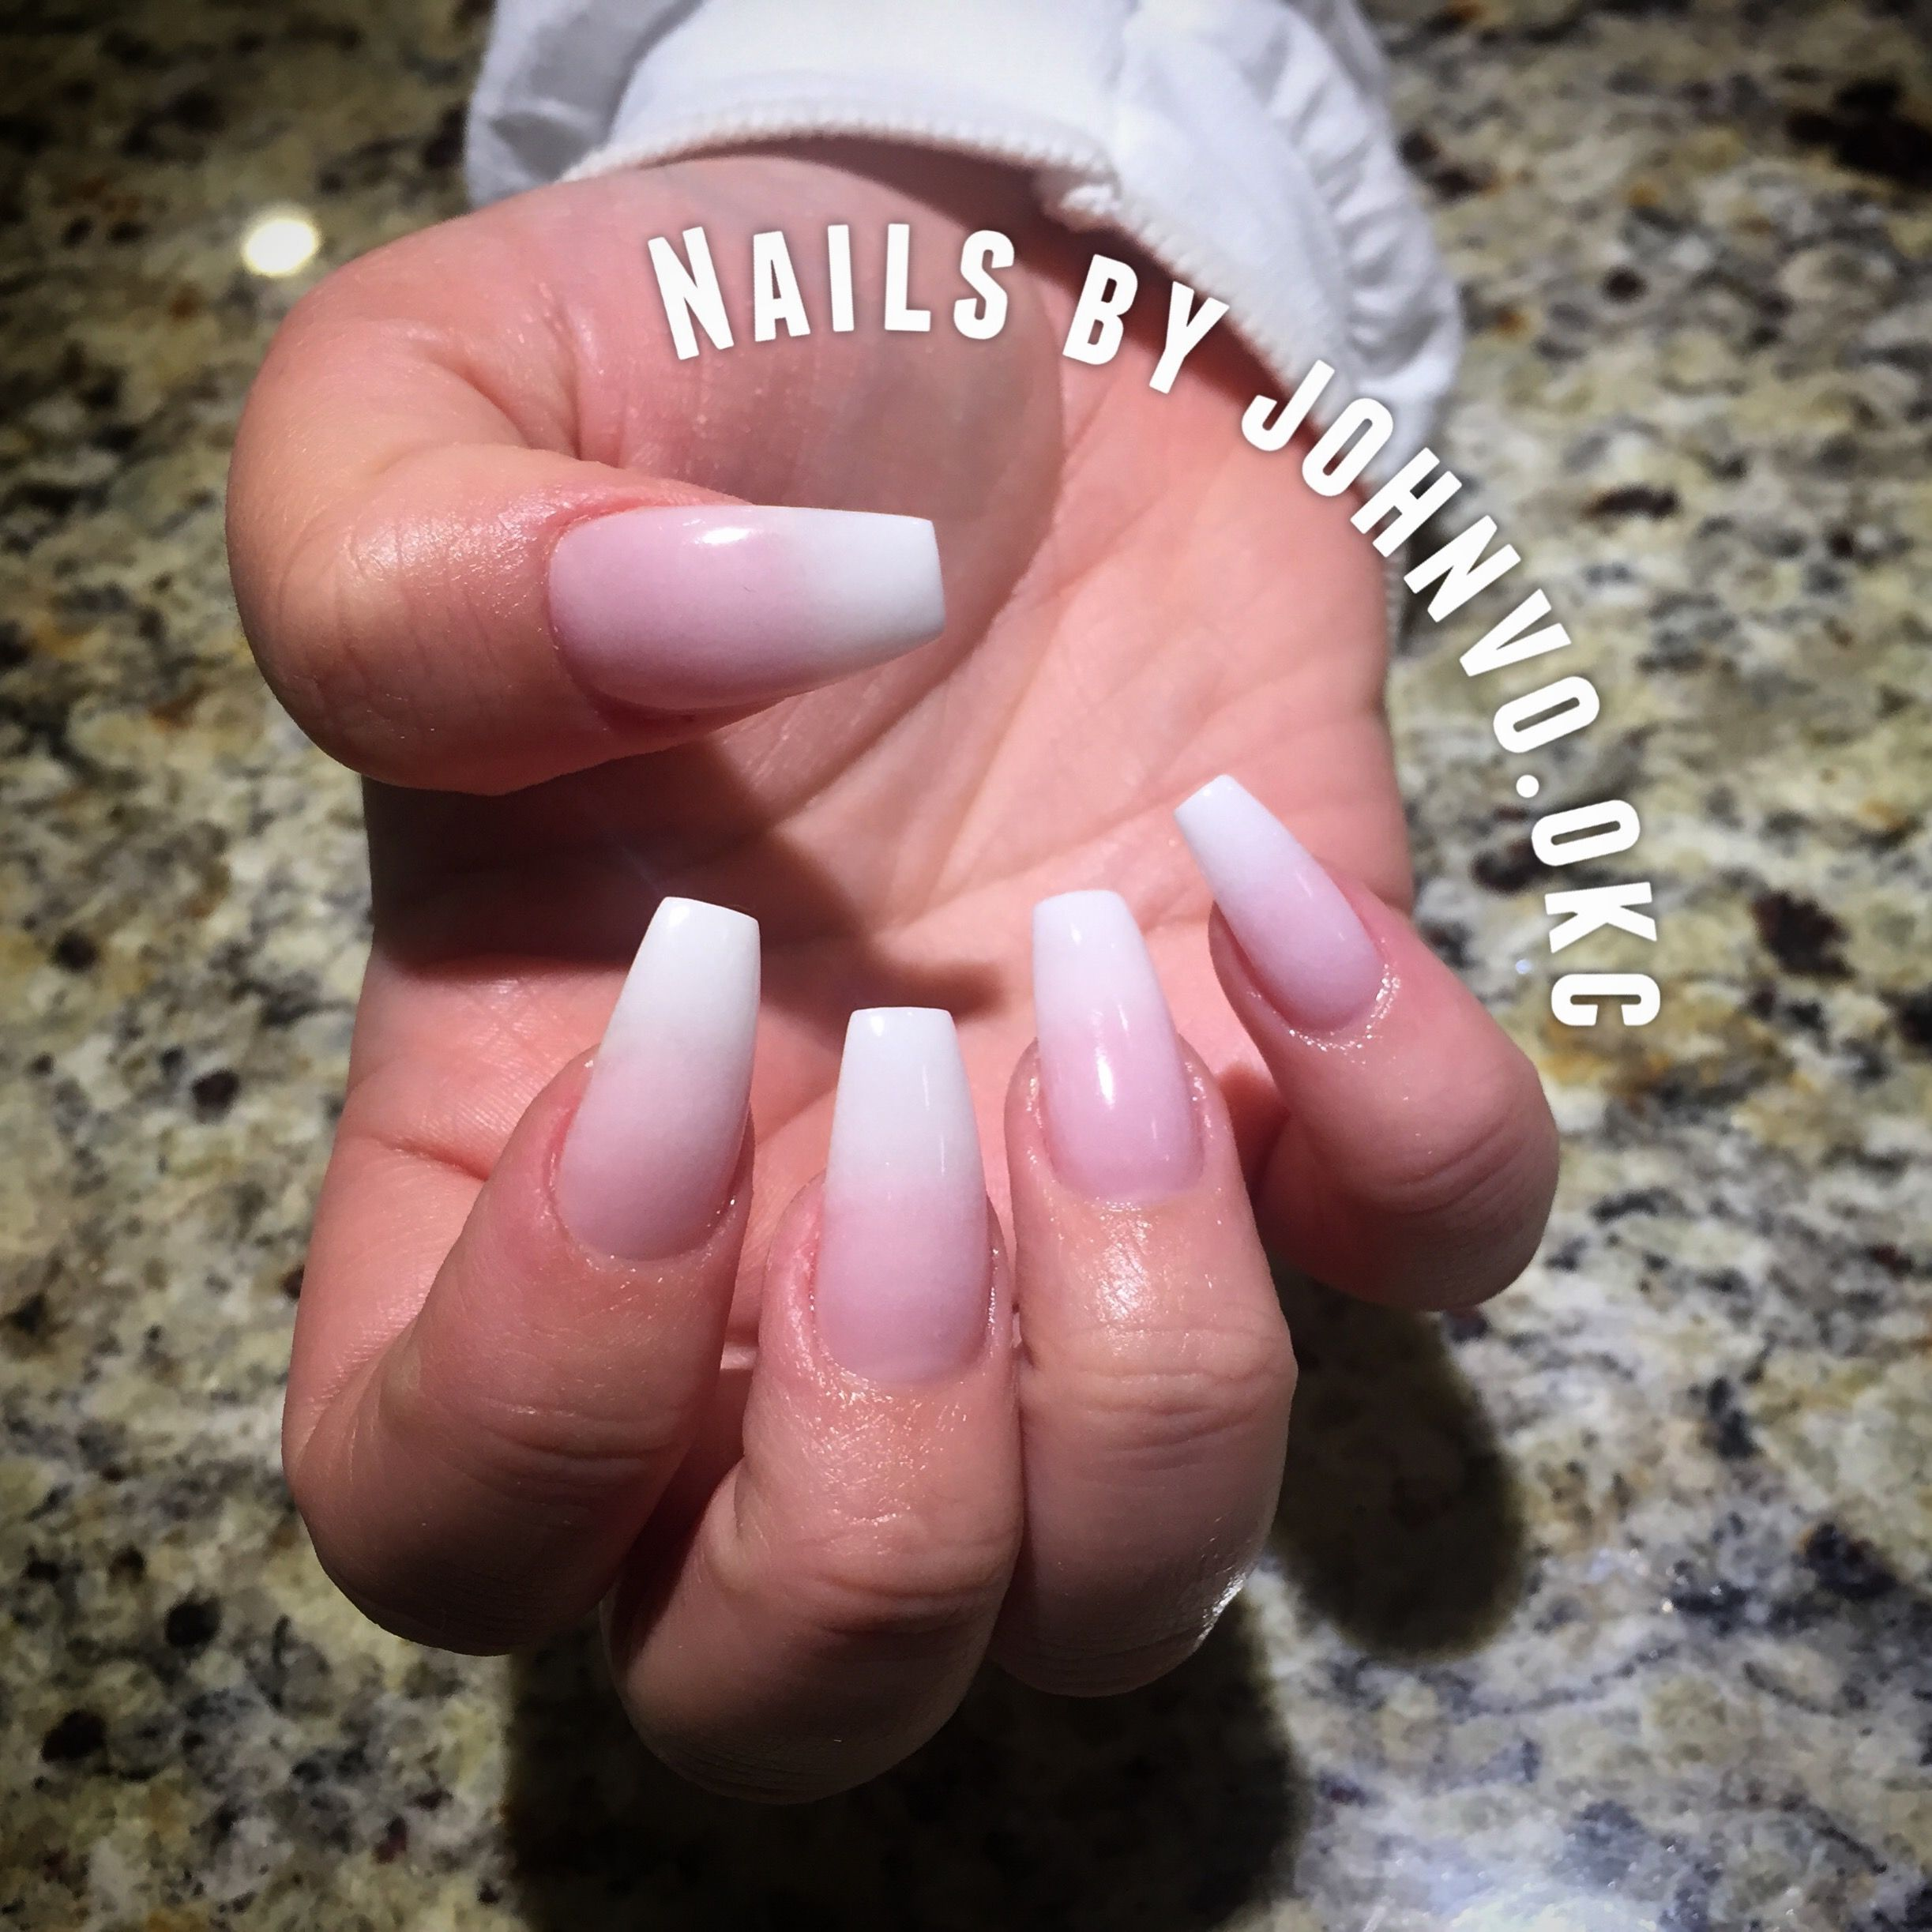 French Ombre Baby Boomer Ballerina Shaped Nails With Tip Extension In The Dip Powder Using Nugenesis Dip System Dipped Nails Powder Nails Ombre Nails